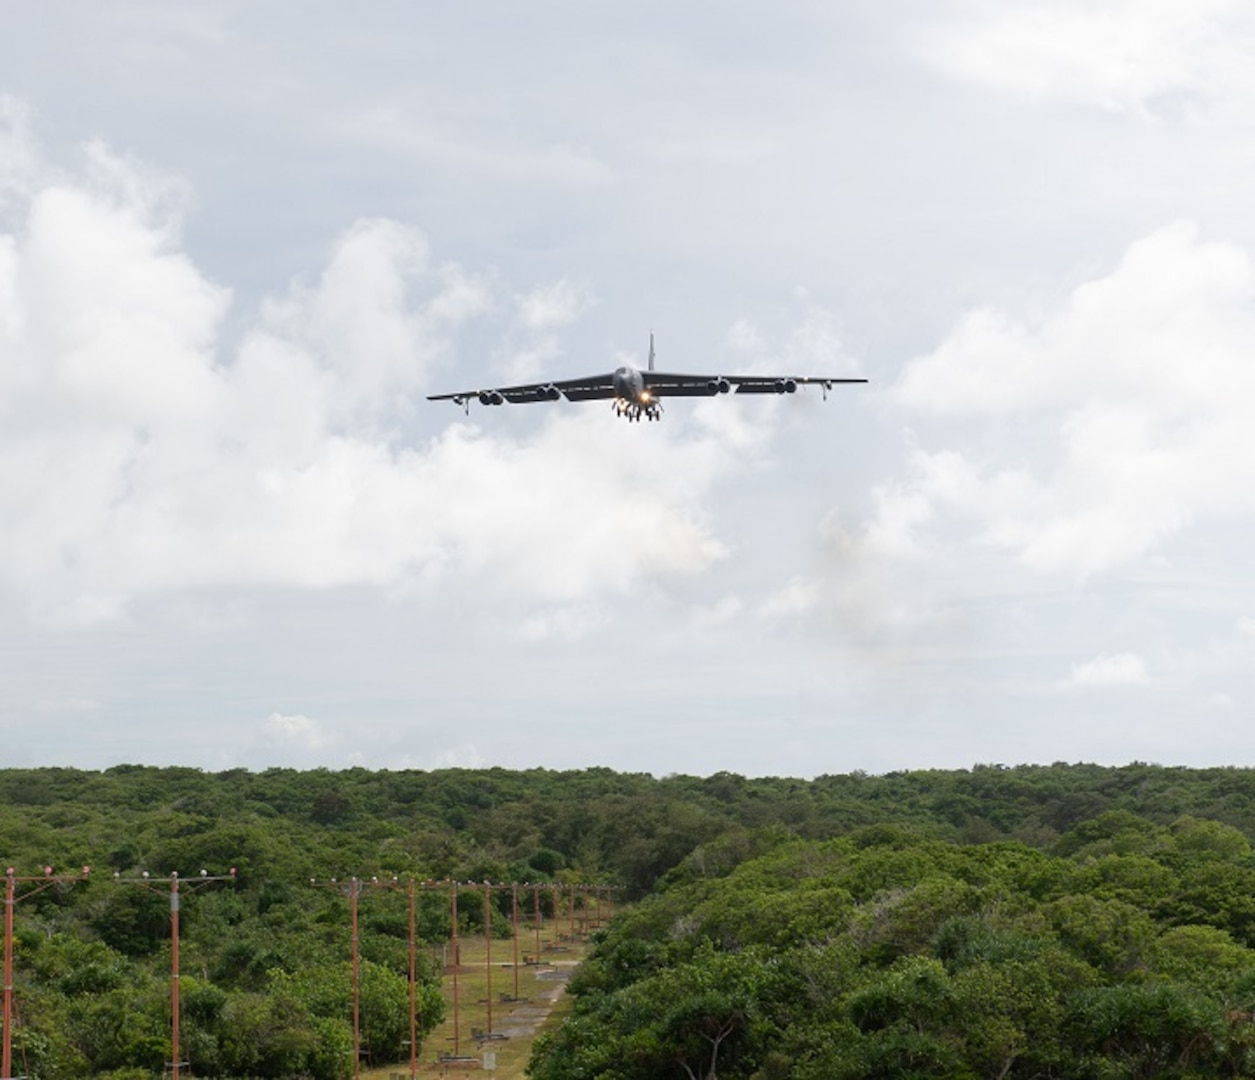 U.S. Air Force B-52H Stratofortress from the 5th Bomb Wing, Minot Air Force Base North Dakota, prepares to land at Andersen Air Force Base, Guam, for a Bomber Task Force deployment, July 15, 2021. Bomber Task Force missions demonstrate the strategic credibility and tactical flexibility of U.S. forces in today's security environment across the globe.